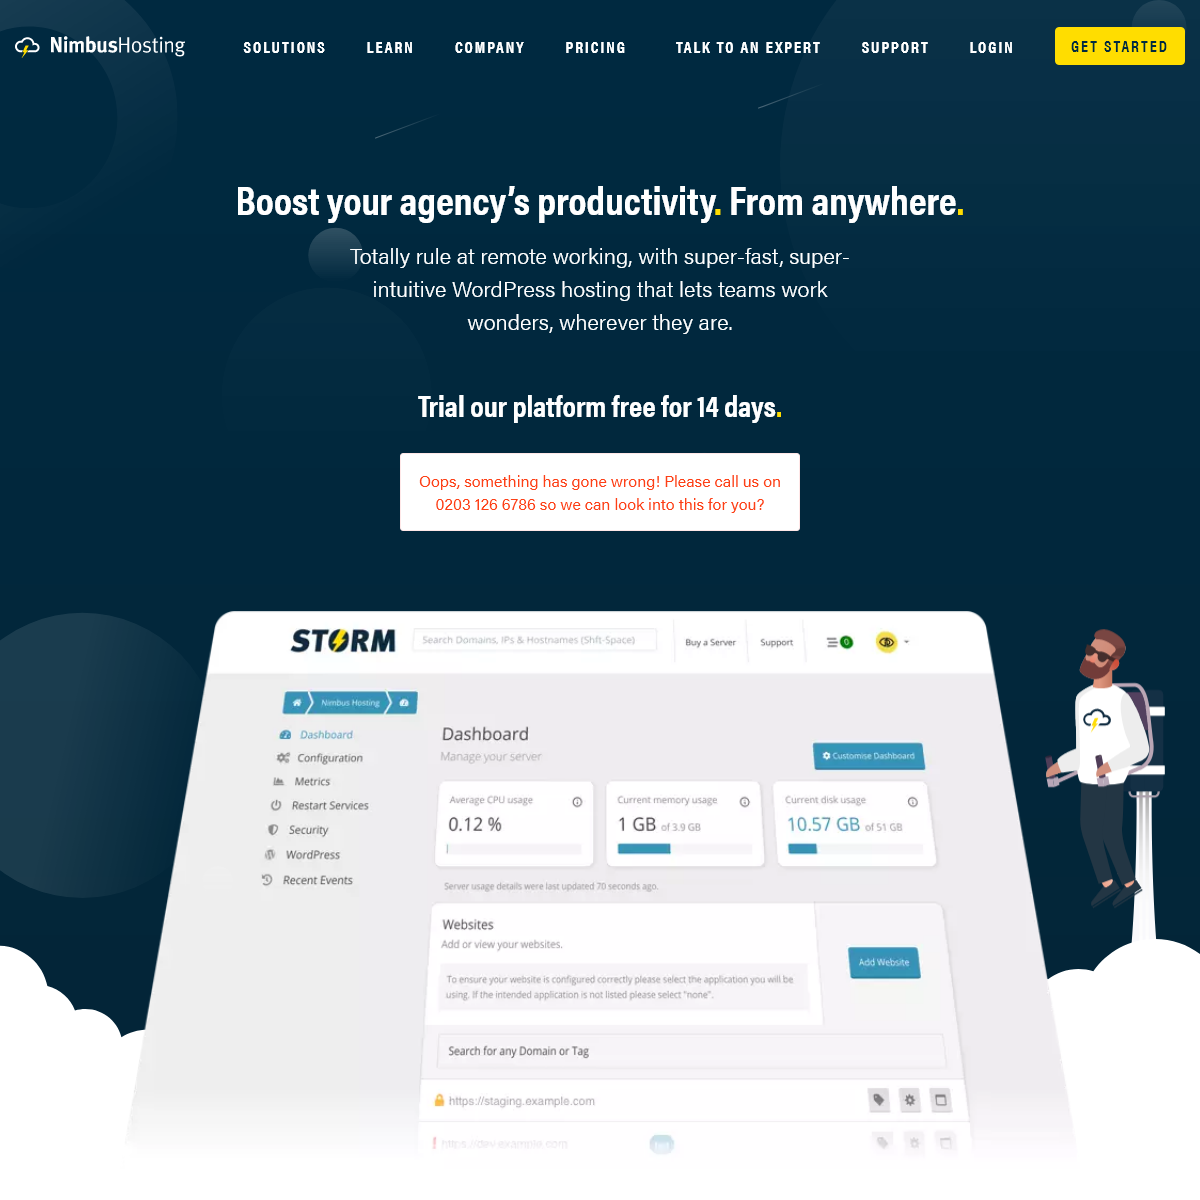 Nimbus Hosting- Making Your Agency More Efficient - Simple, Fast, Secure